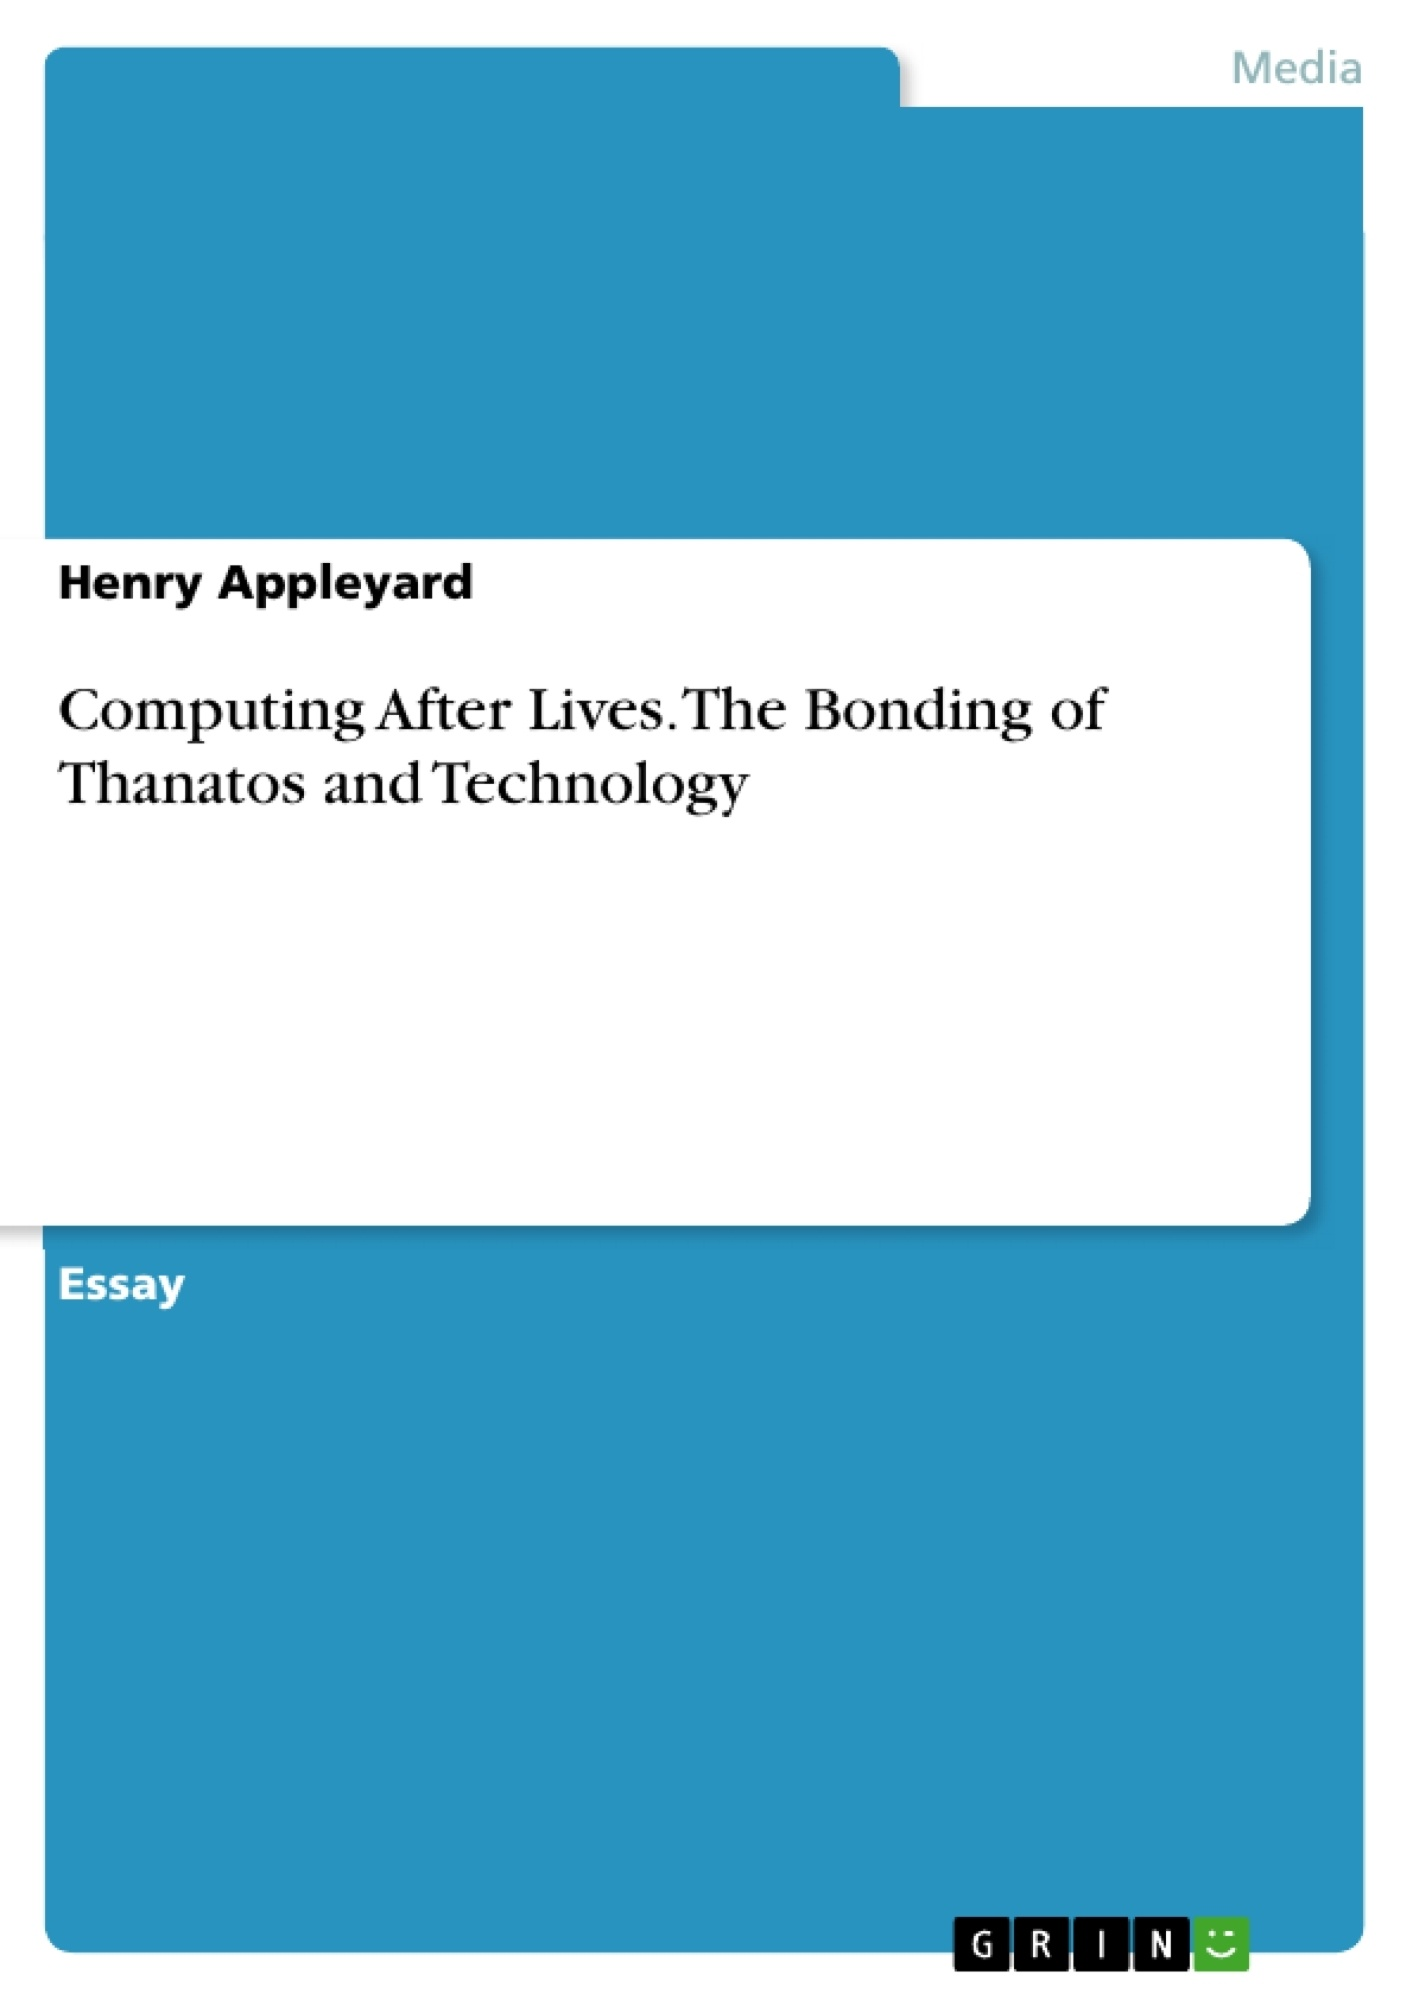 Title: Computing After Lives. The Bonding of Thanatos and Technology